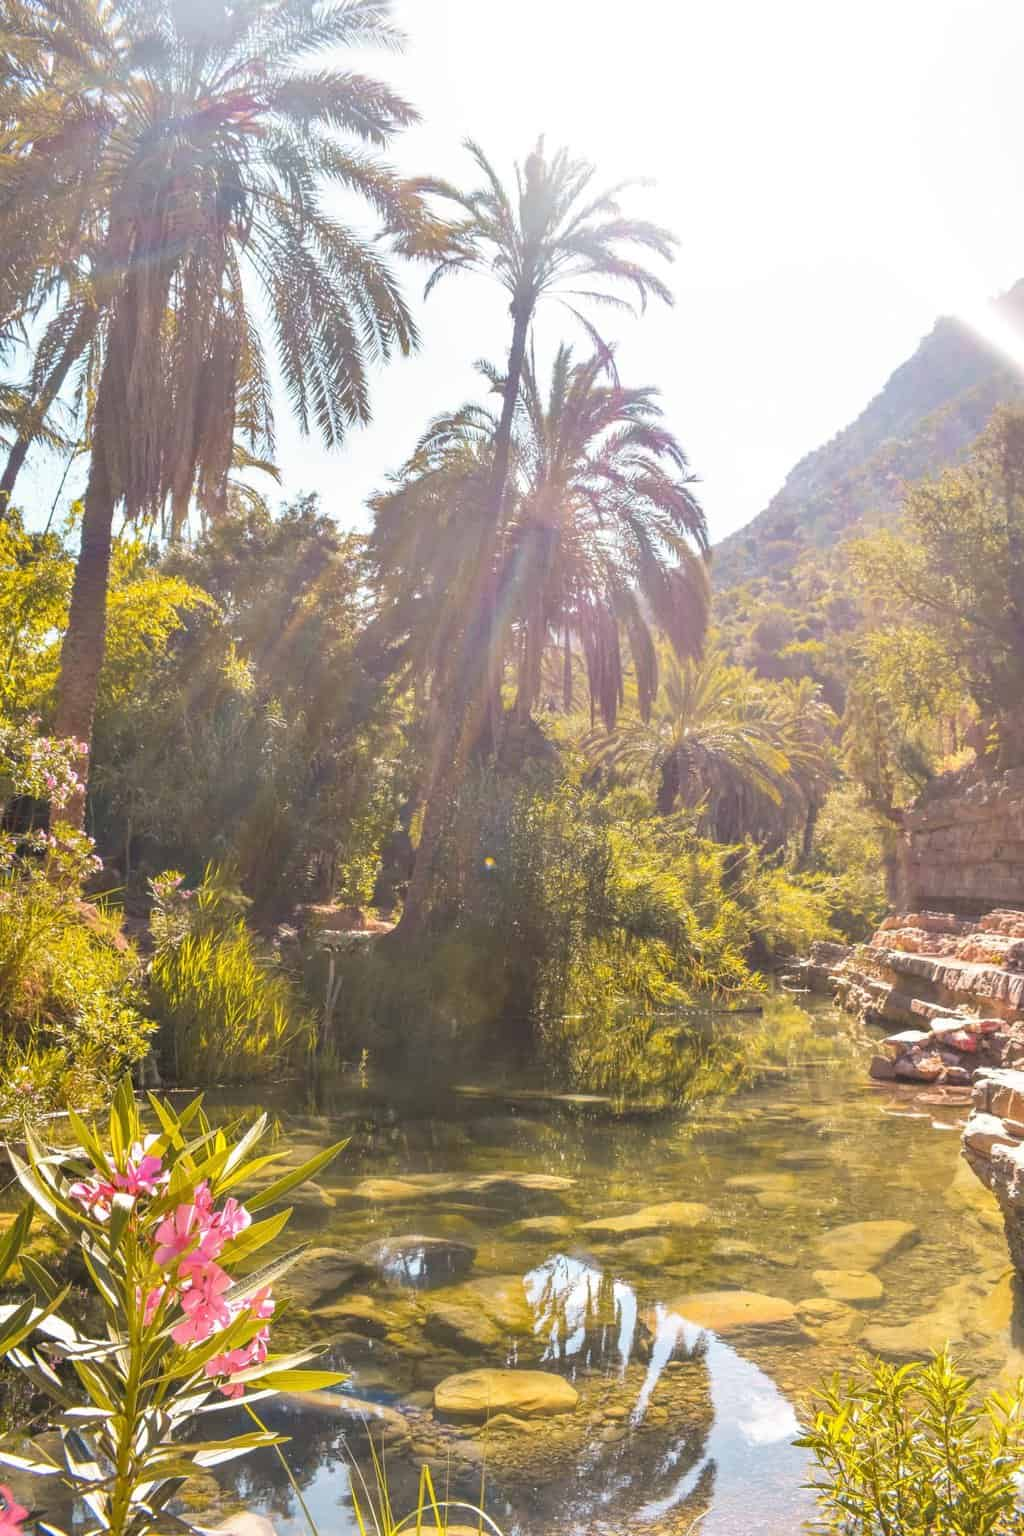 Visiting Taghazout and Paradise Valley